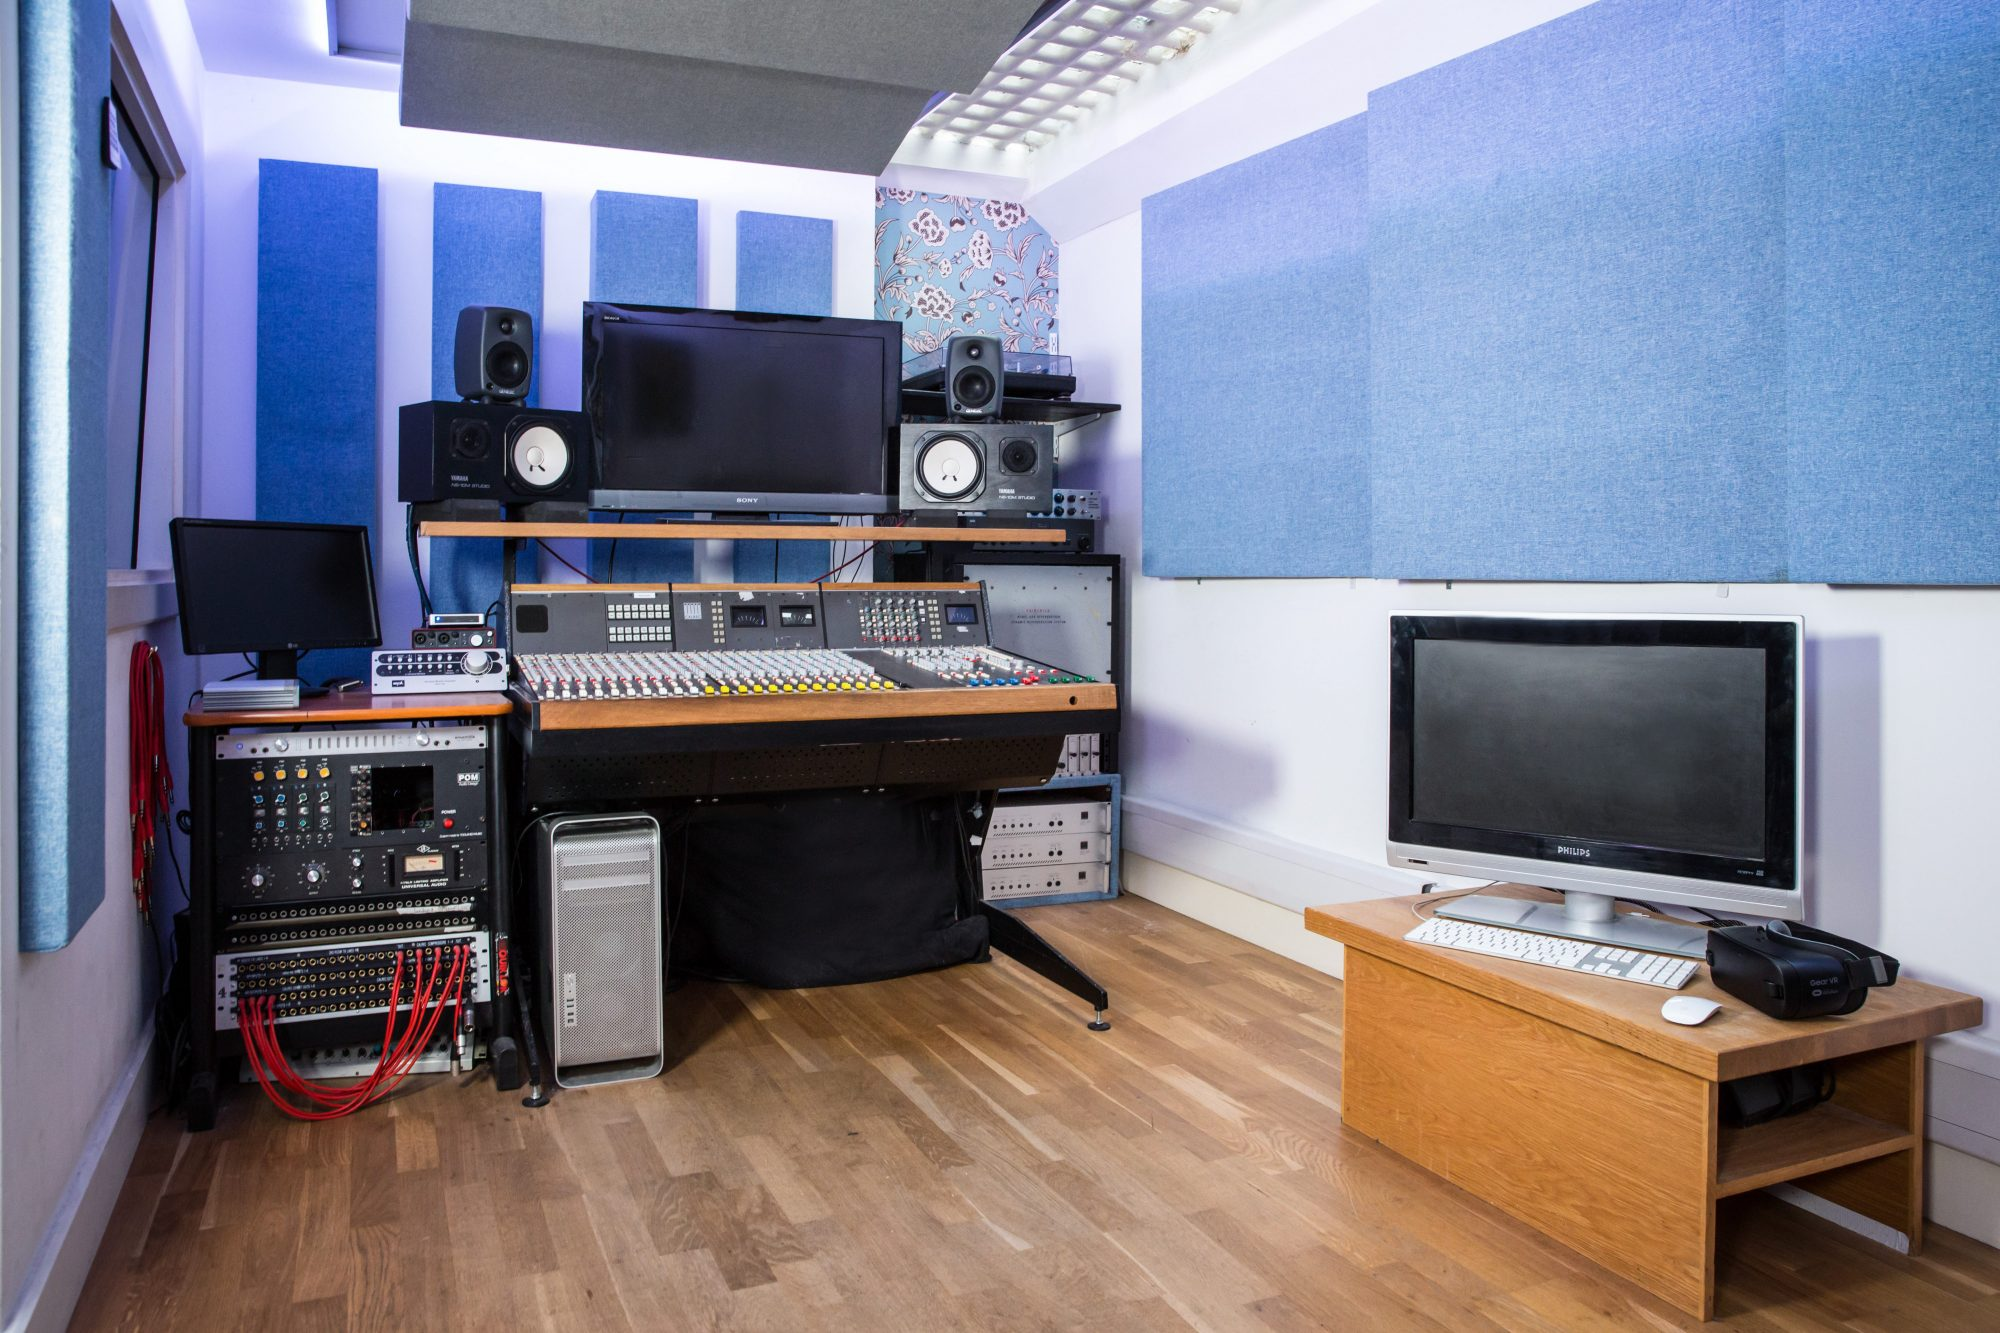 soho-radio-studios_podcast-recording-studio-04_music-recording-equipment